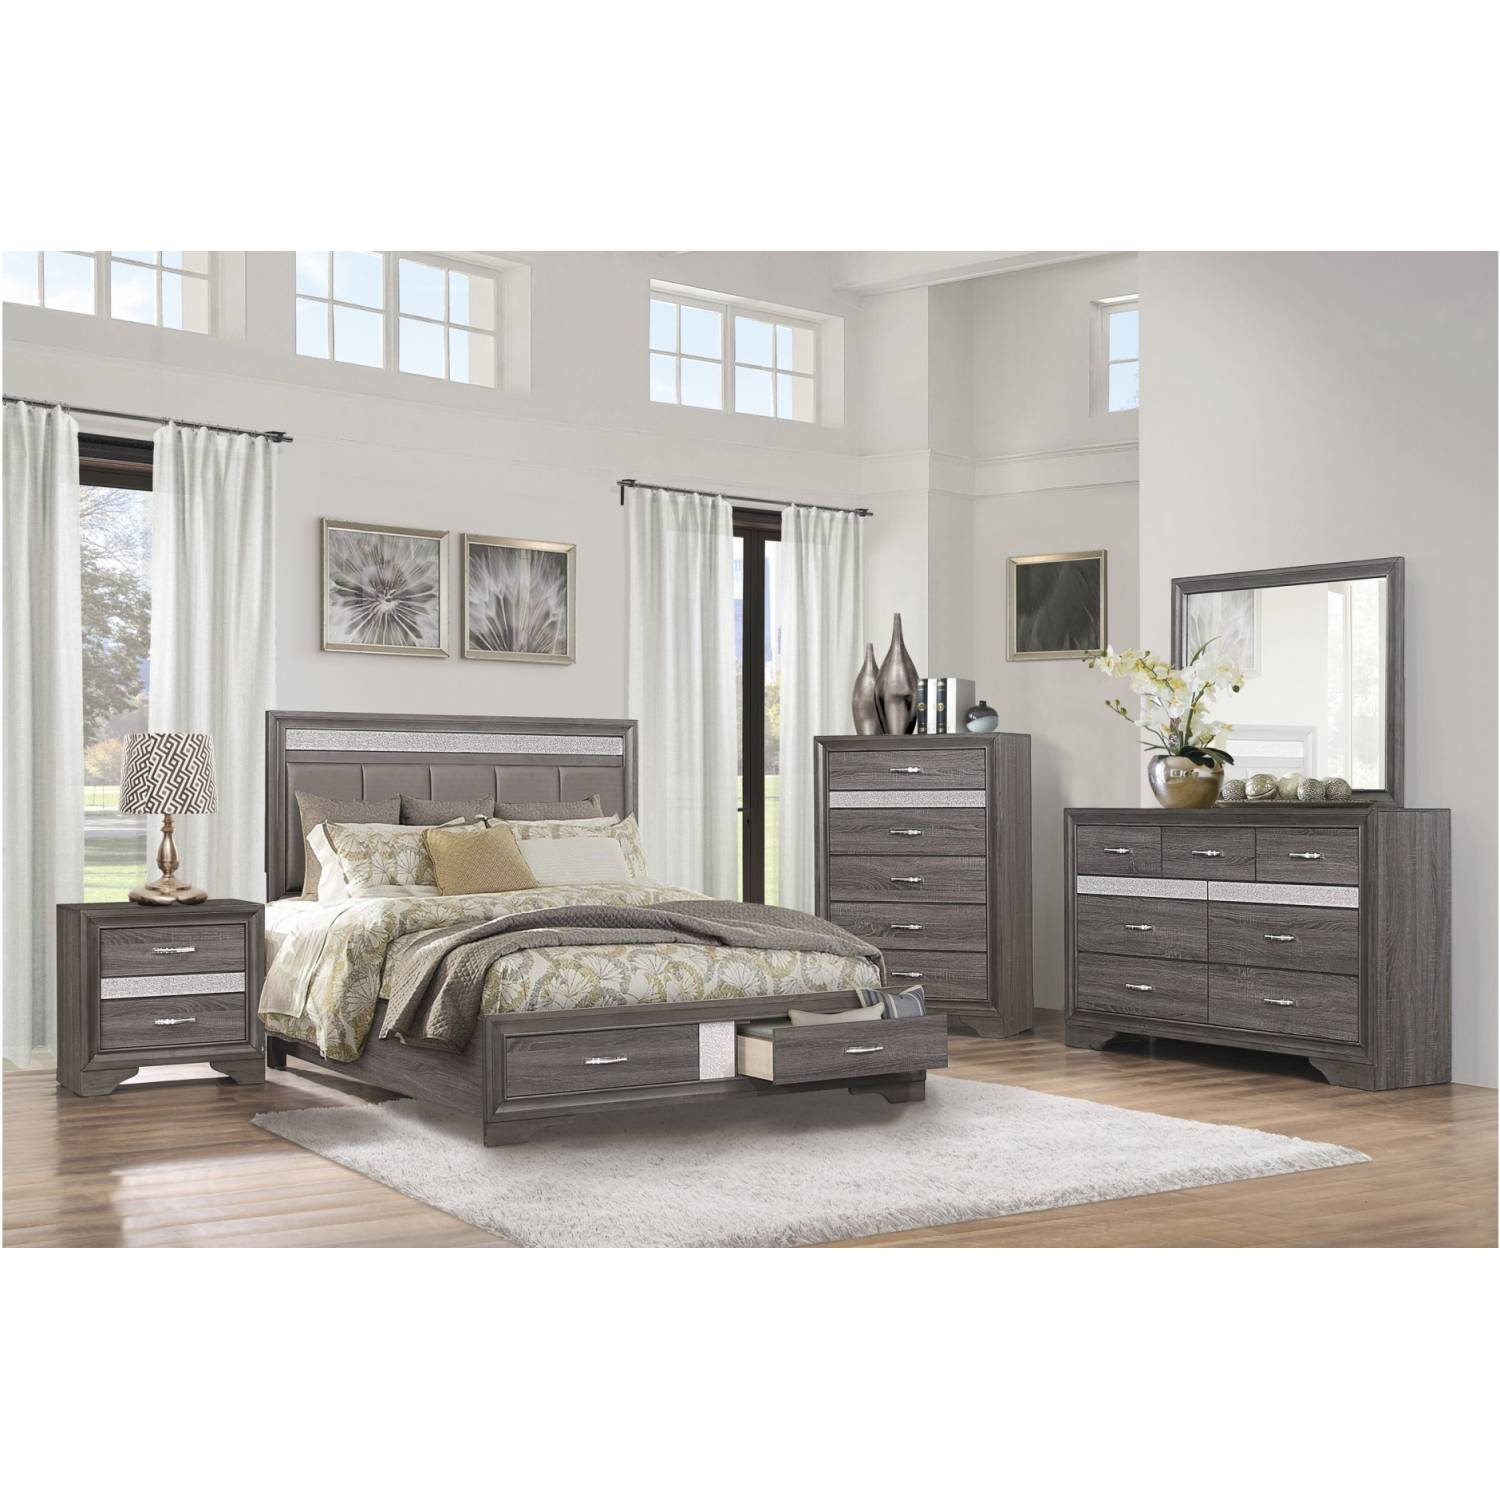 1505 Gr Queen Bedroom Set Luster